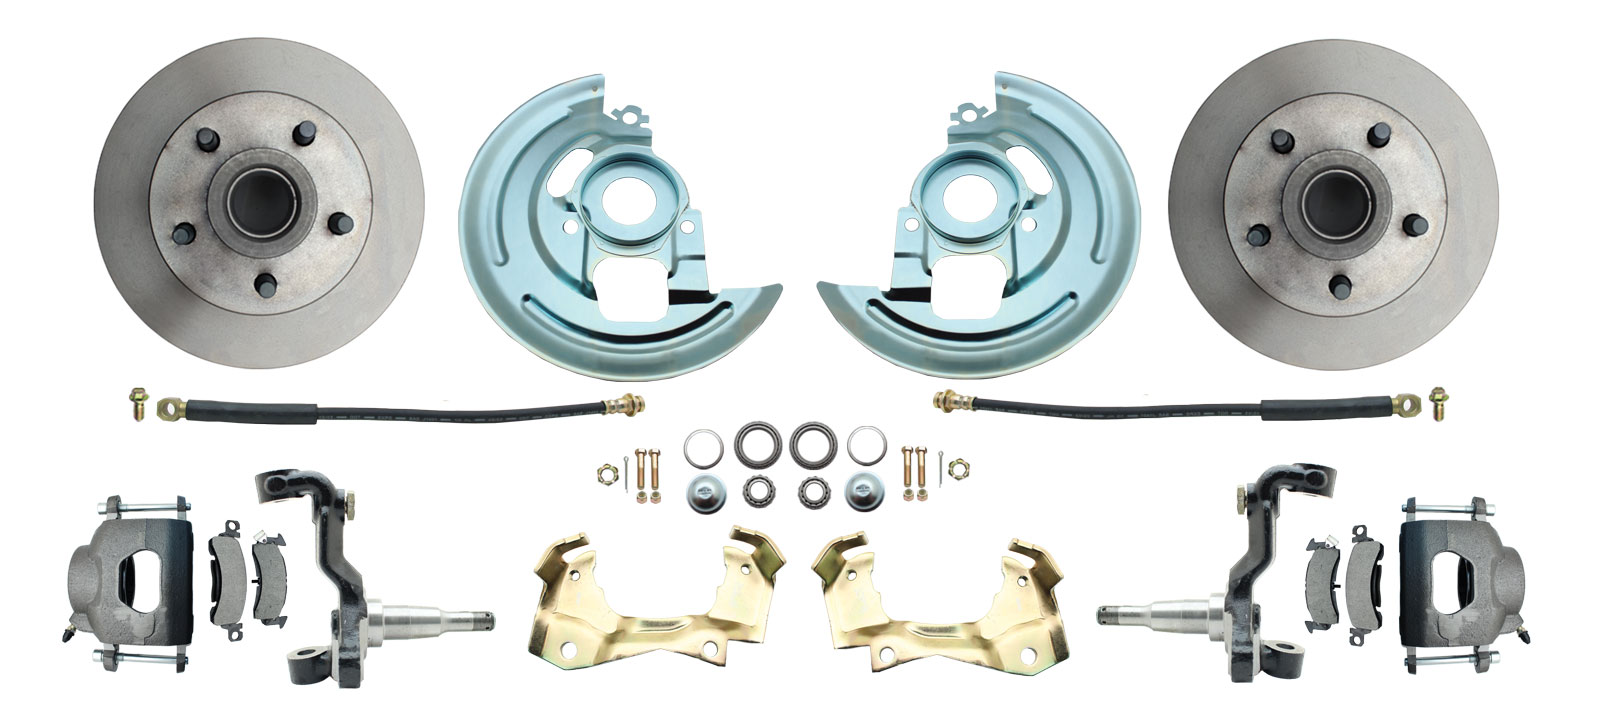 1964-1972 GM A Body (Chevelle, GTO, Cutlass) Stock Height Front Disc Brake Kit